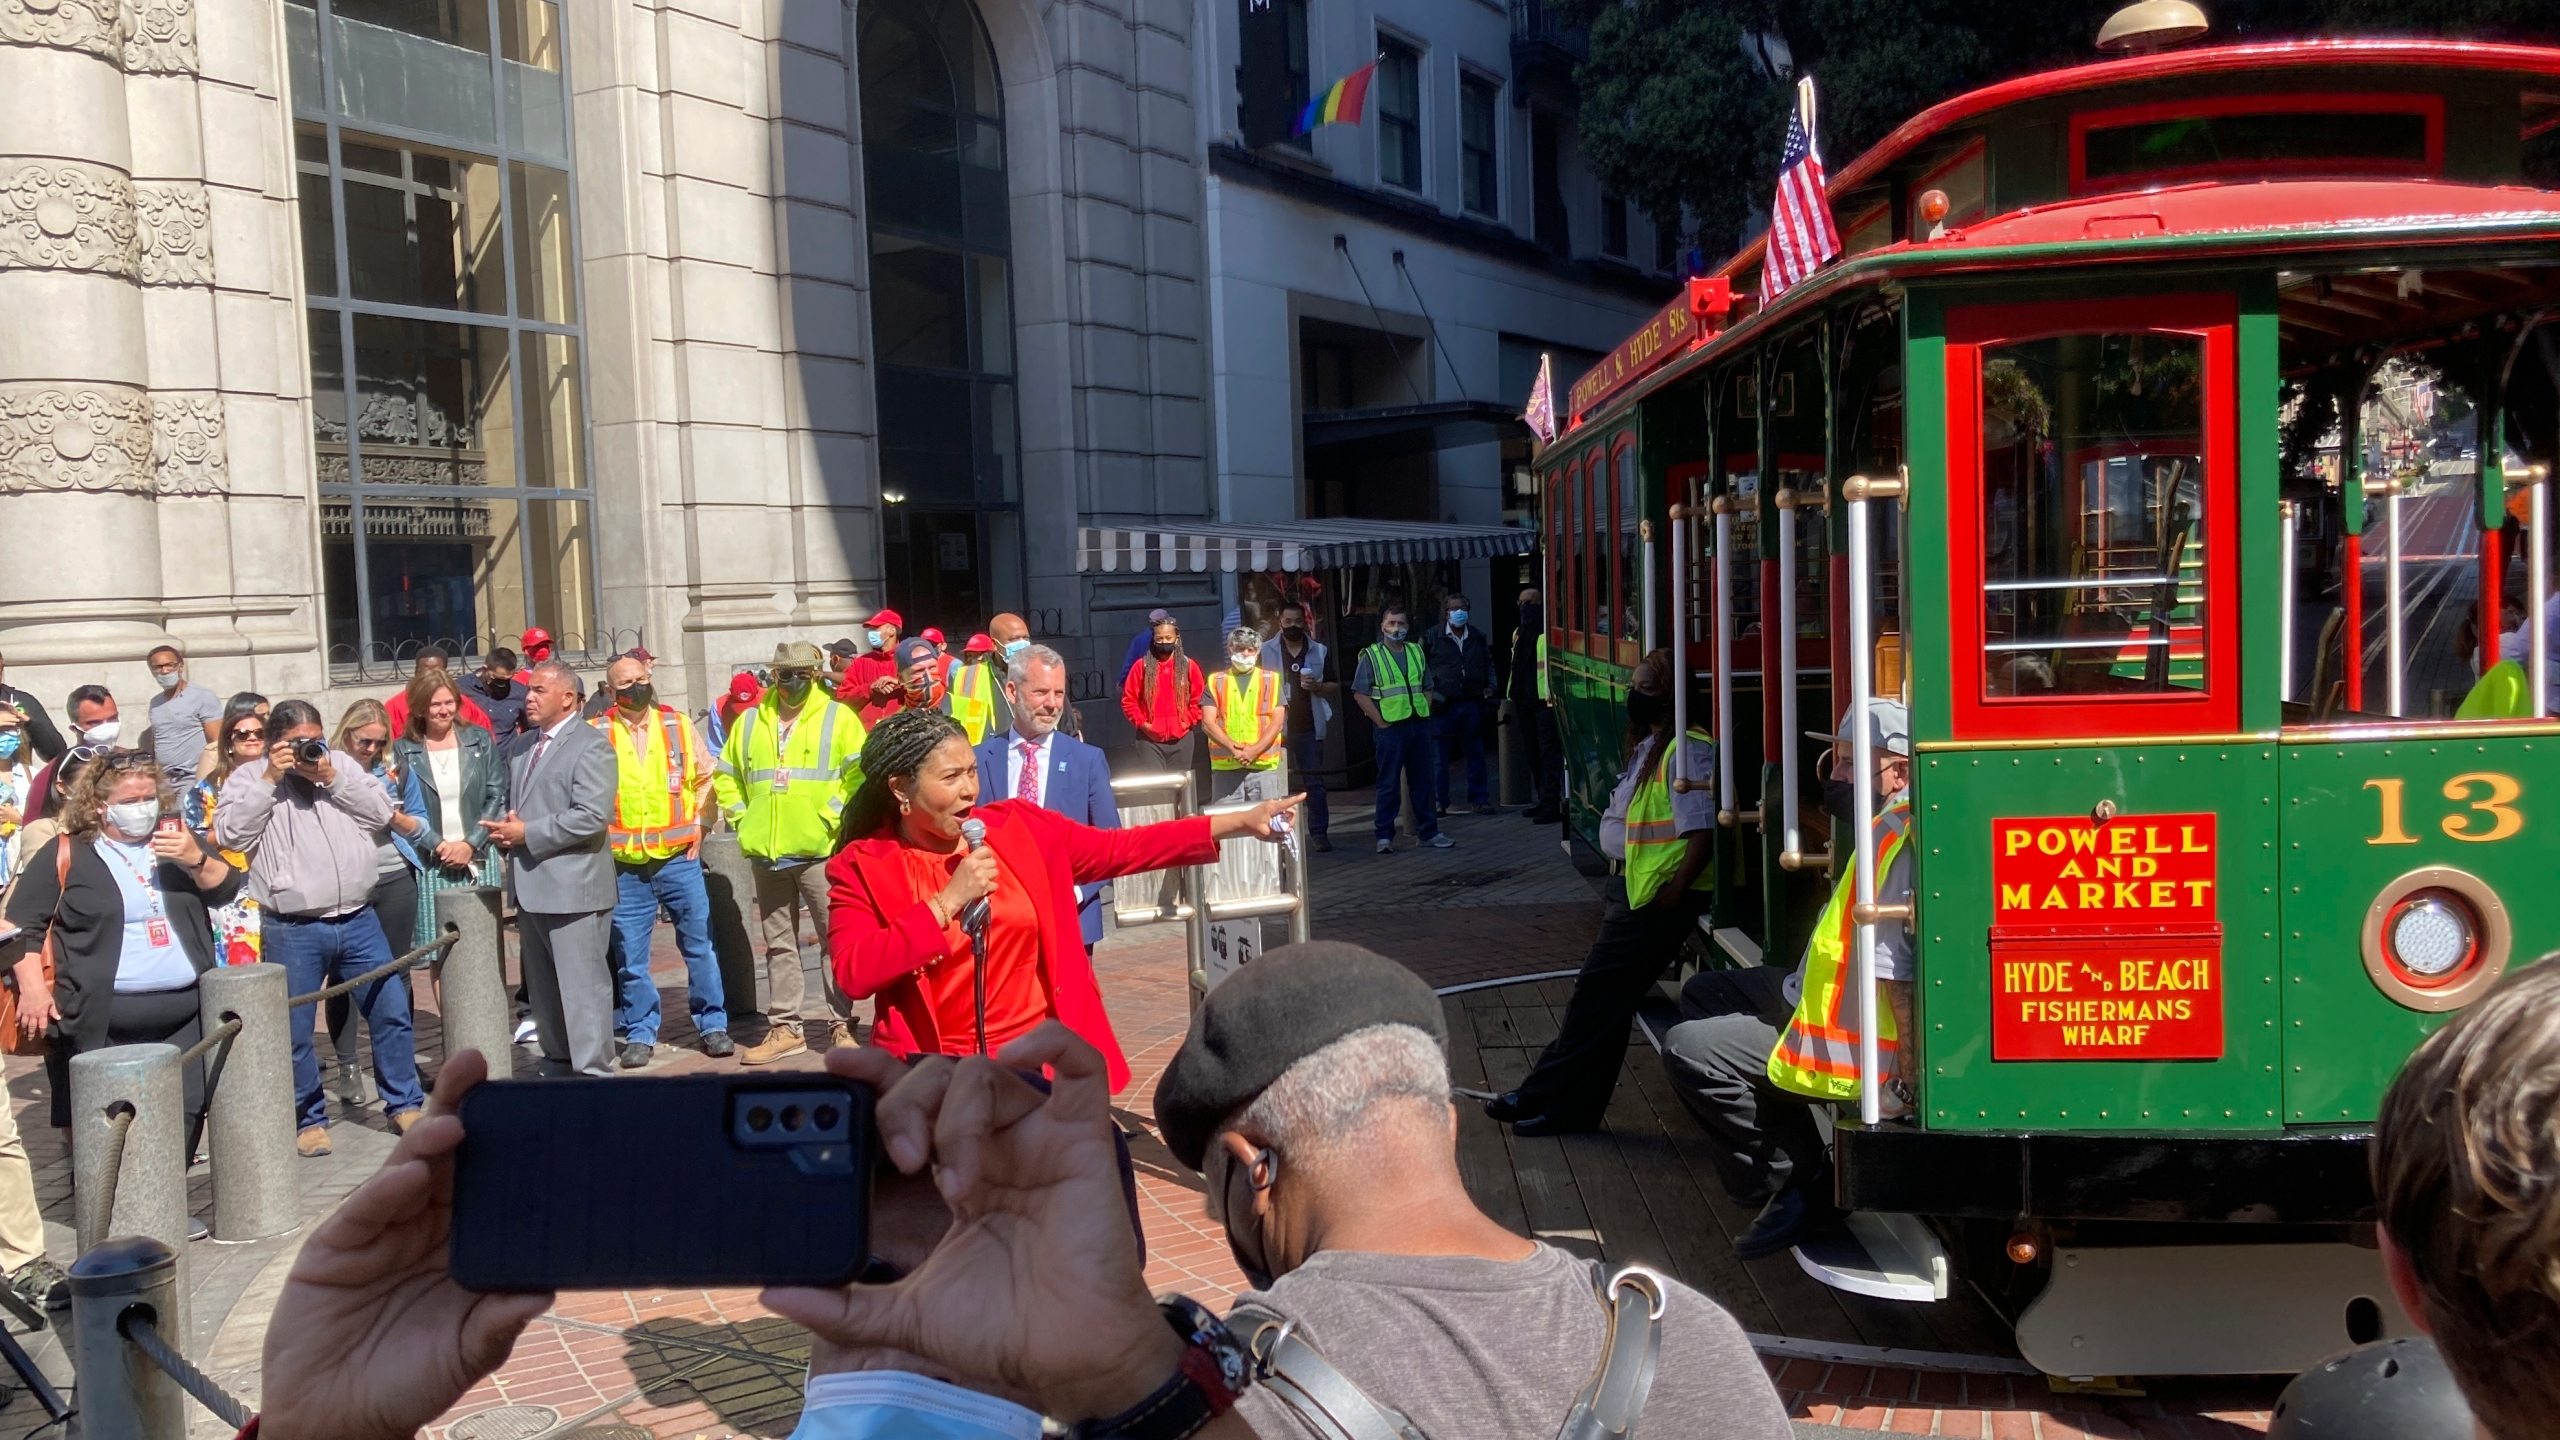 Mayor London Breed welcomes people to return of the cable car service during a ceremony at the Powell Street turnaround plaza in San Francisco on Aug. 2, 2021. San Francisco's iconic cable cars are rolling again after being sidelined by the pandemic for months. People were already forming long lines to ride the cable cars, which will offer free rides the month of August. (AP Photo/Olga Rodriguez)